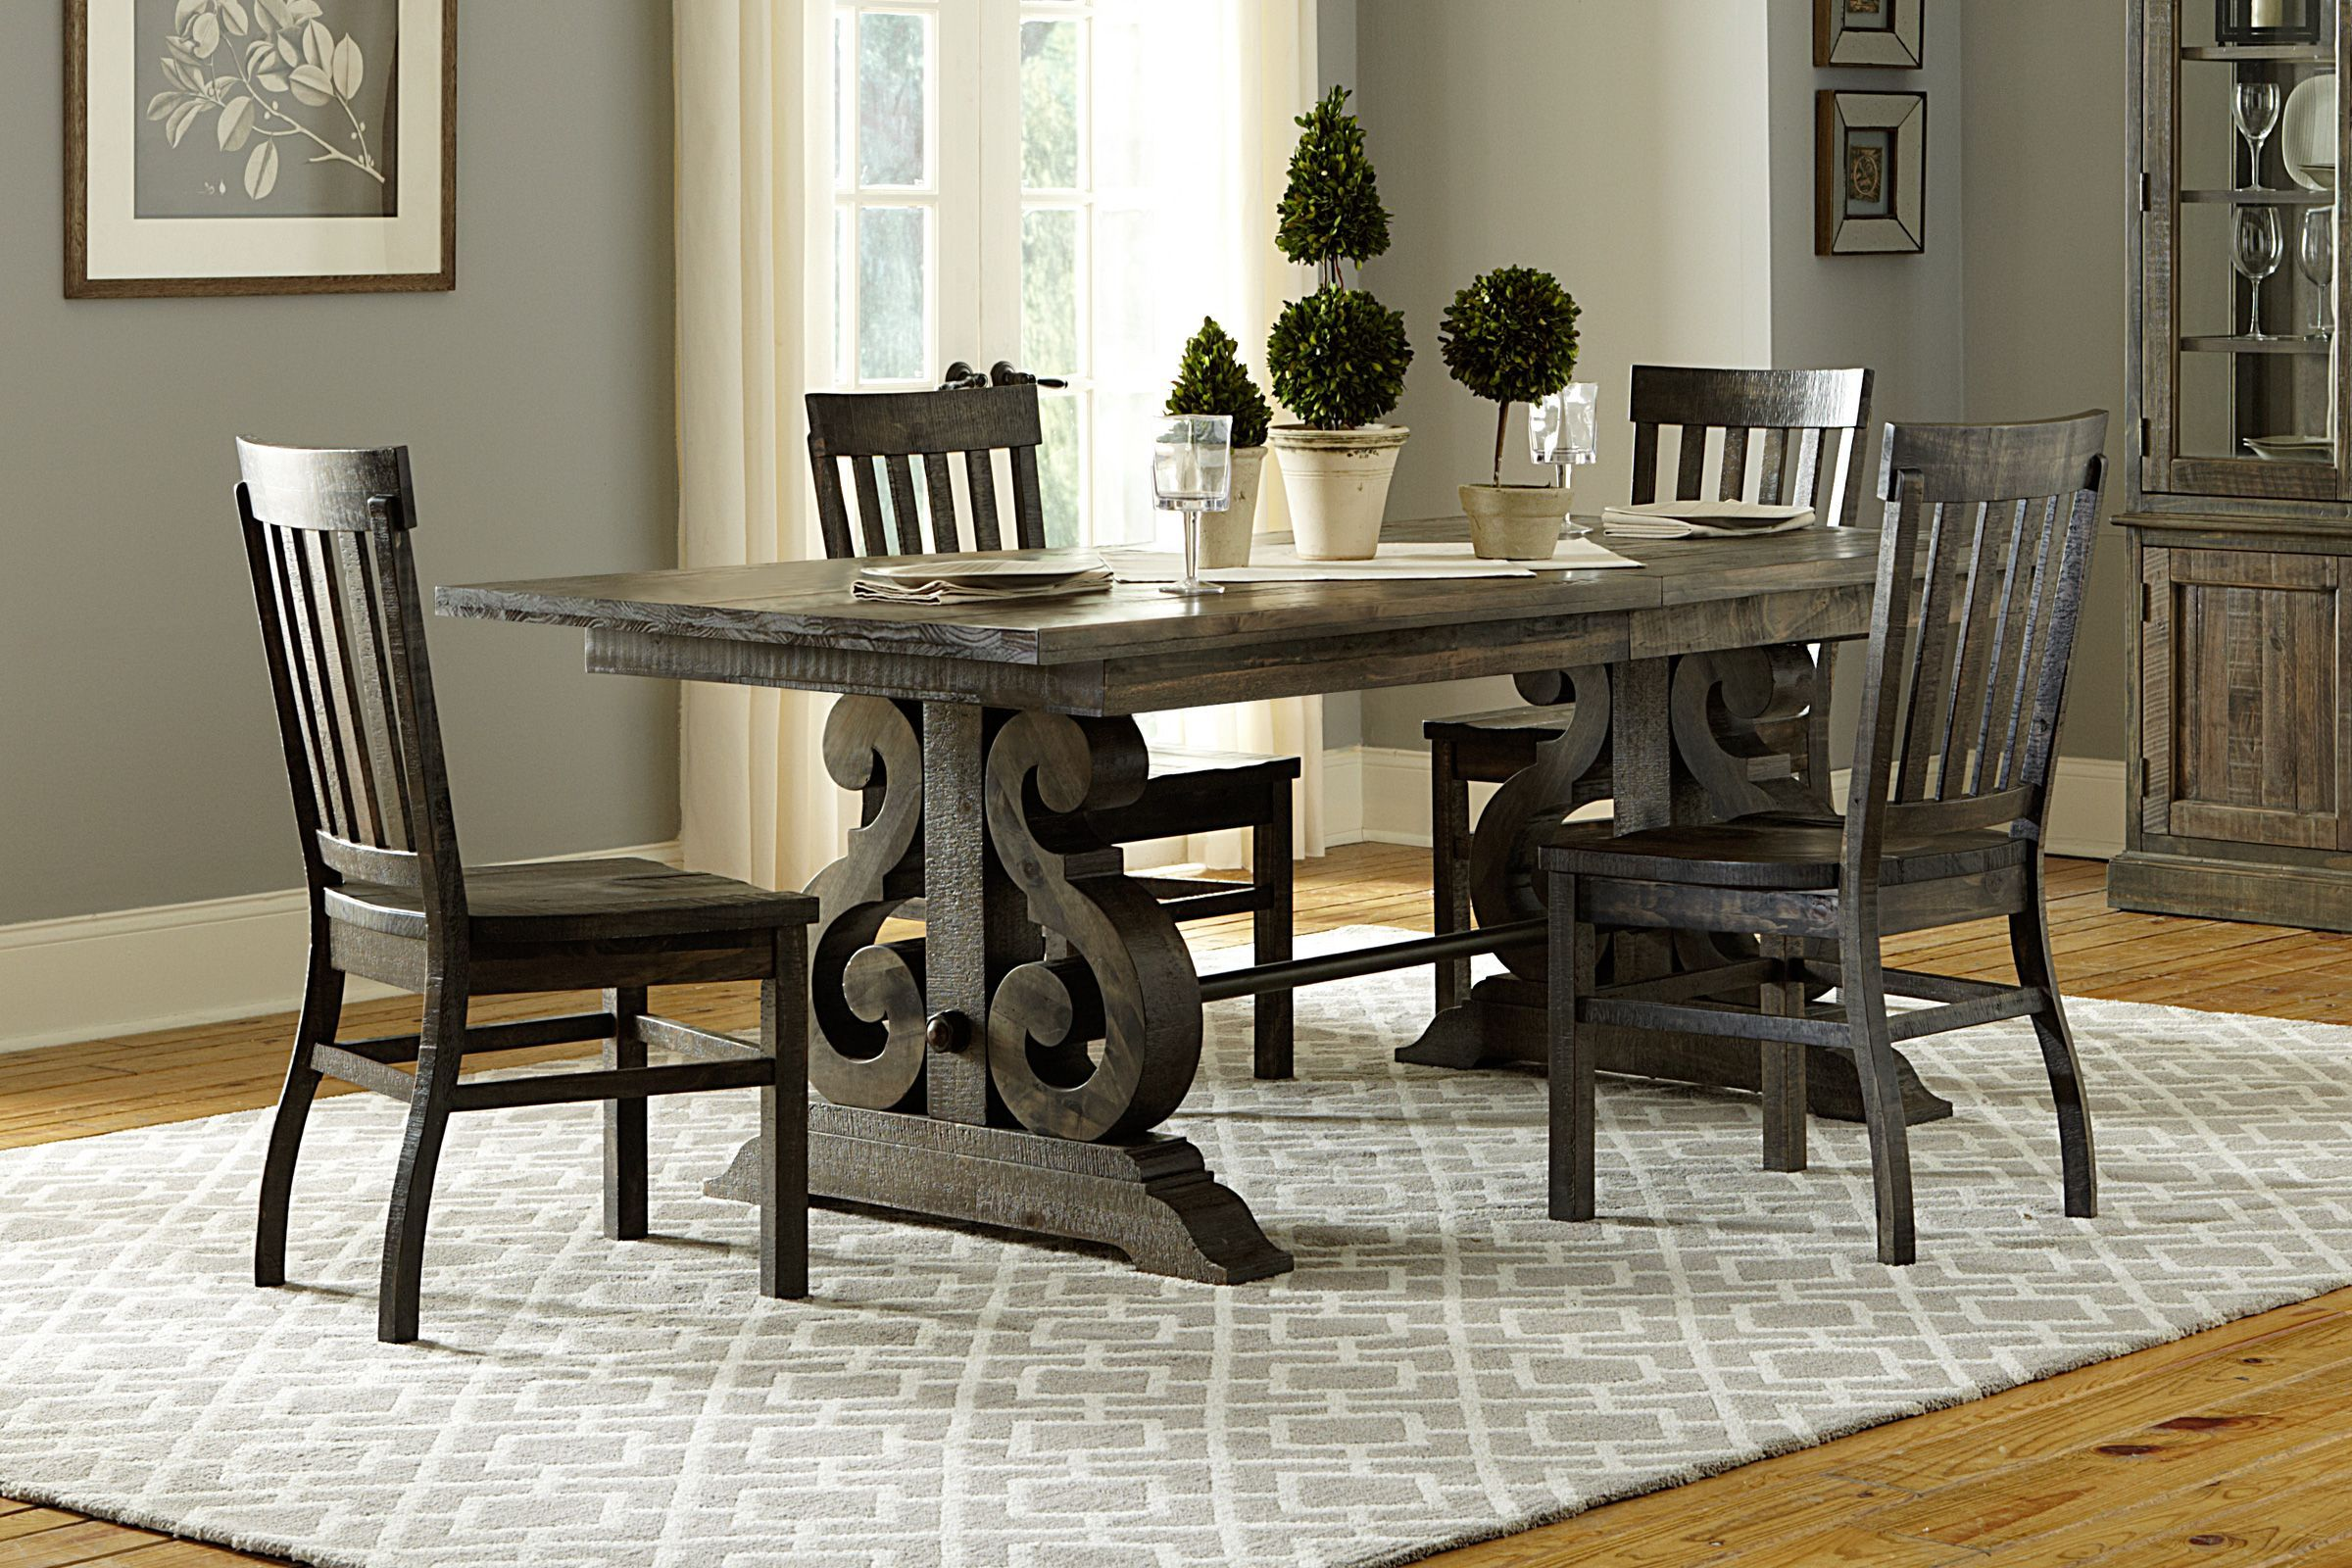 bellpine rectangular dining table + 4 side chairs in 2020